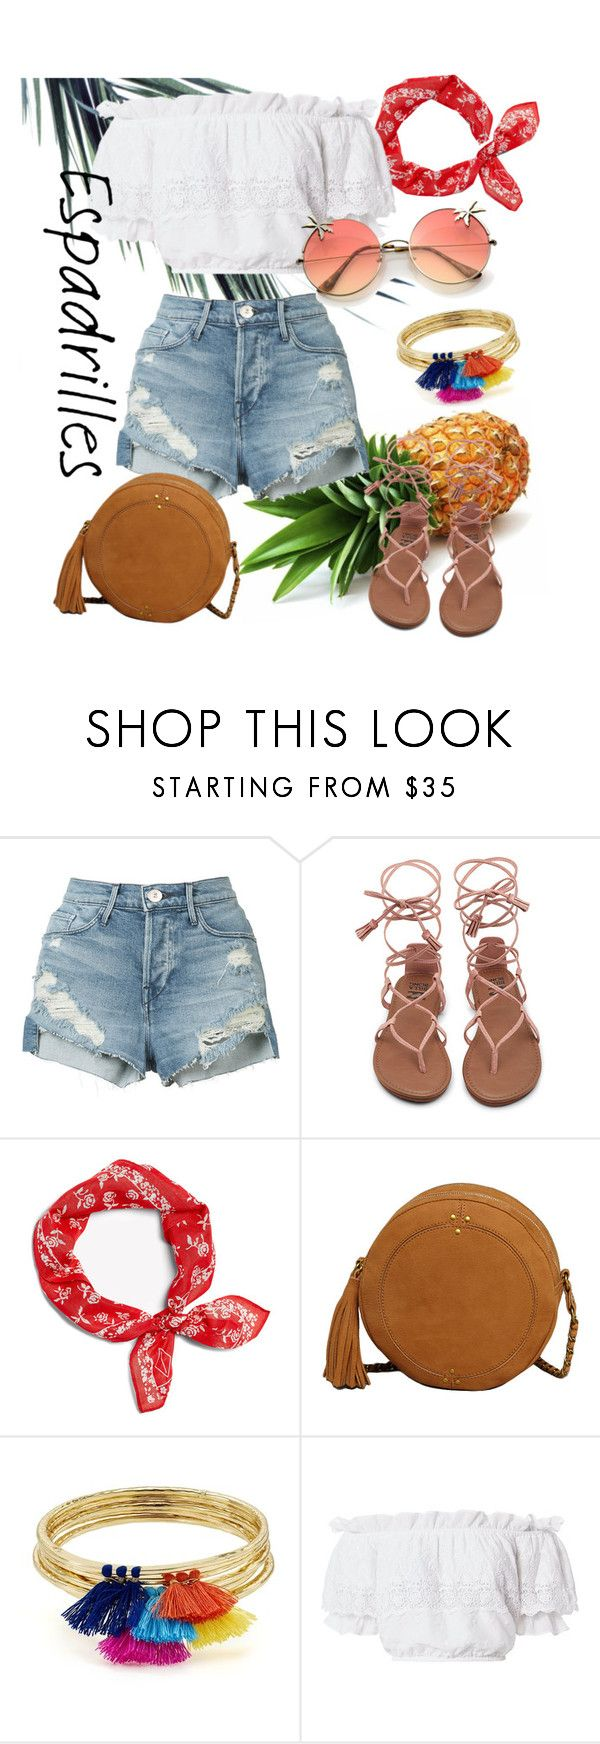 """Summer vibe +outfit#105+"" by alifia-fae on Polyvore featuring 3x1, Aqua and LoveShackFancy"